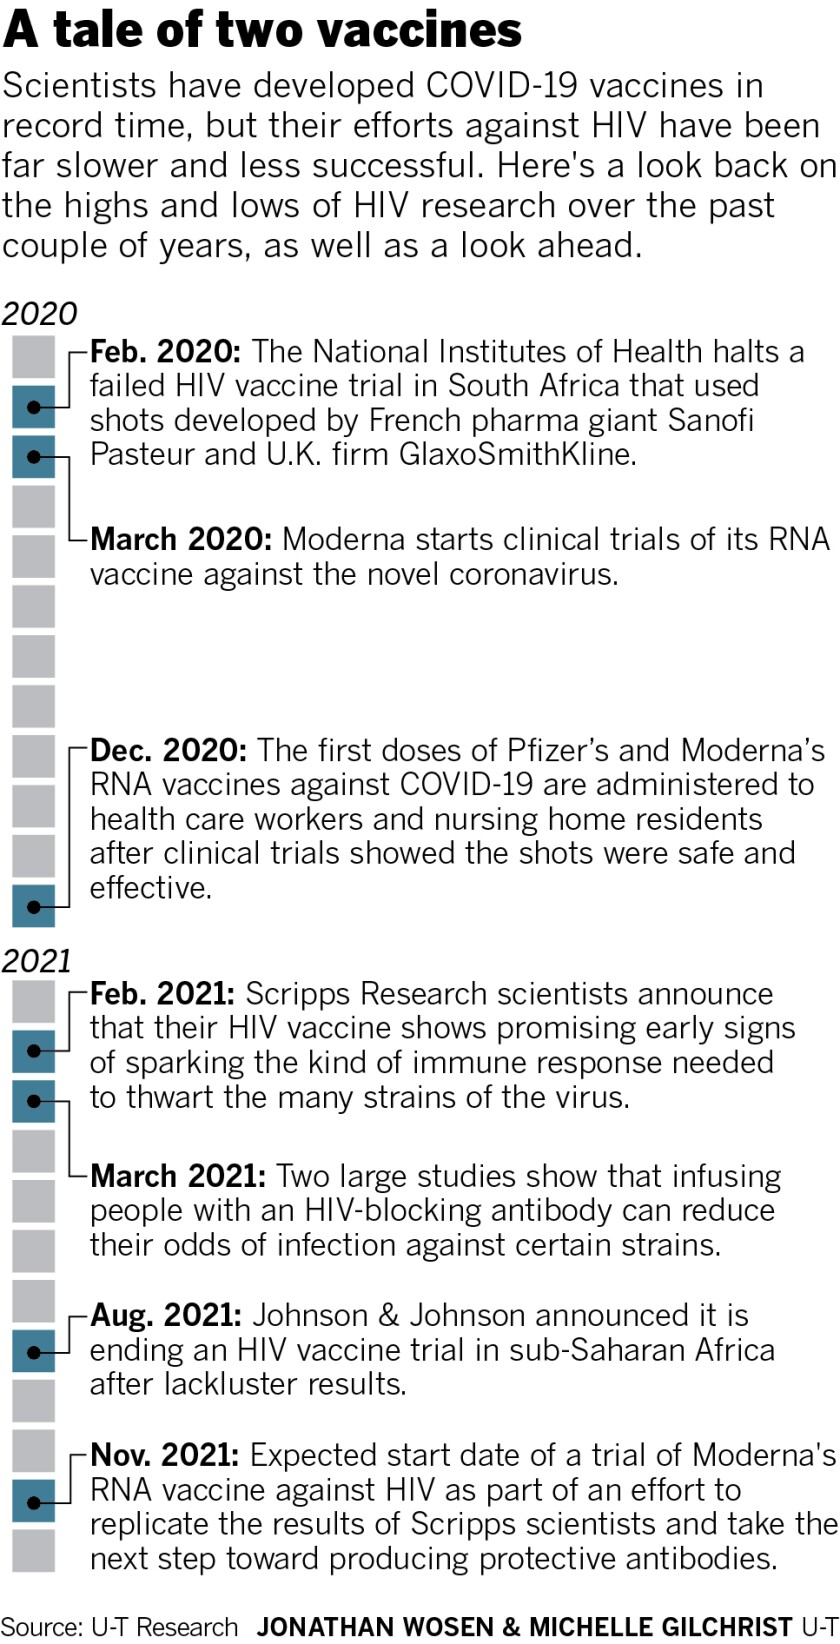 A tale of two vaccines, HIV and COVID-19